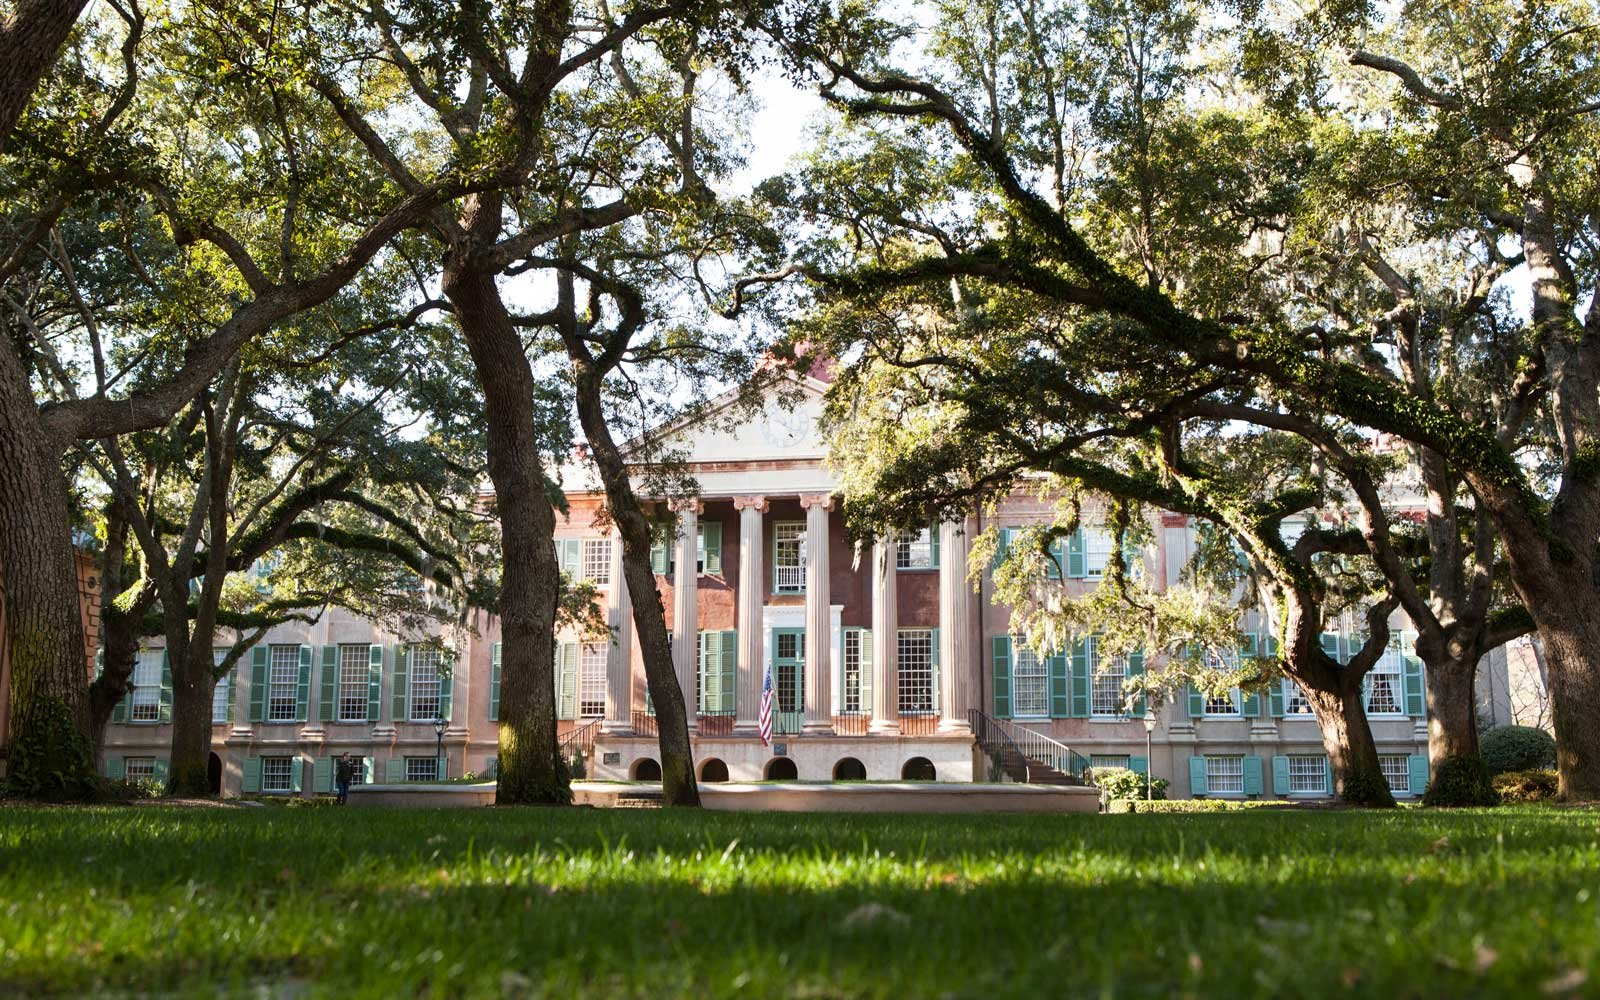 College of Charleston's Historic Randolph Hall